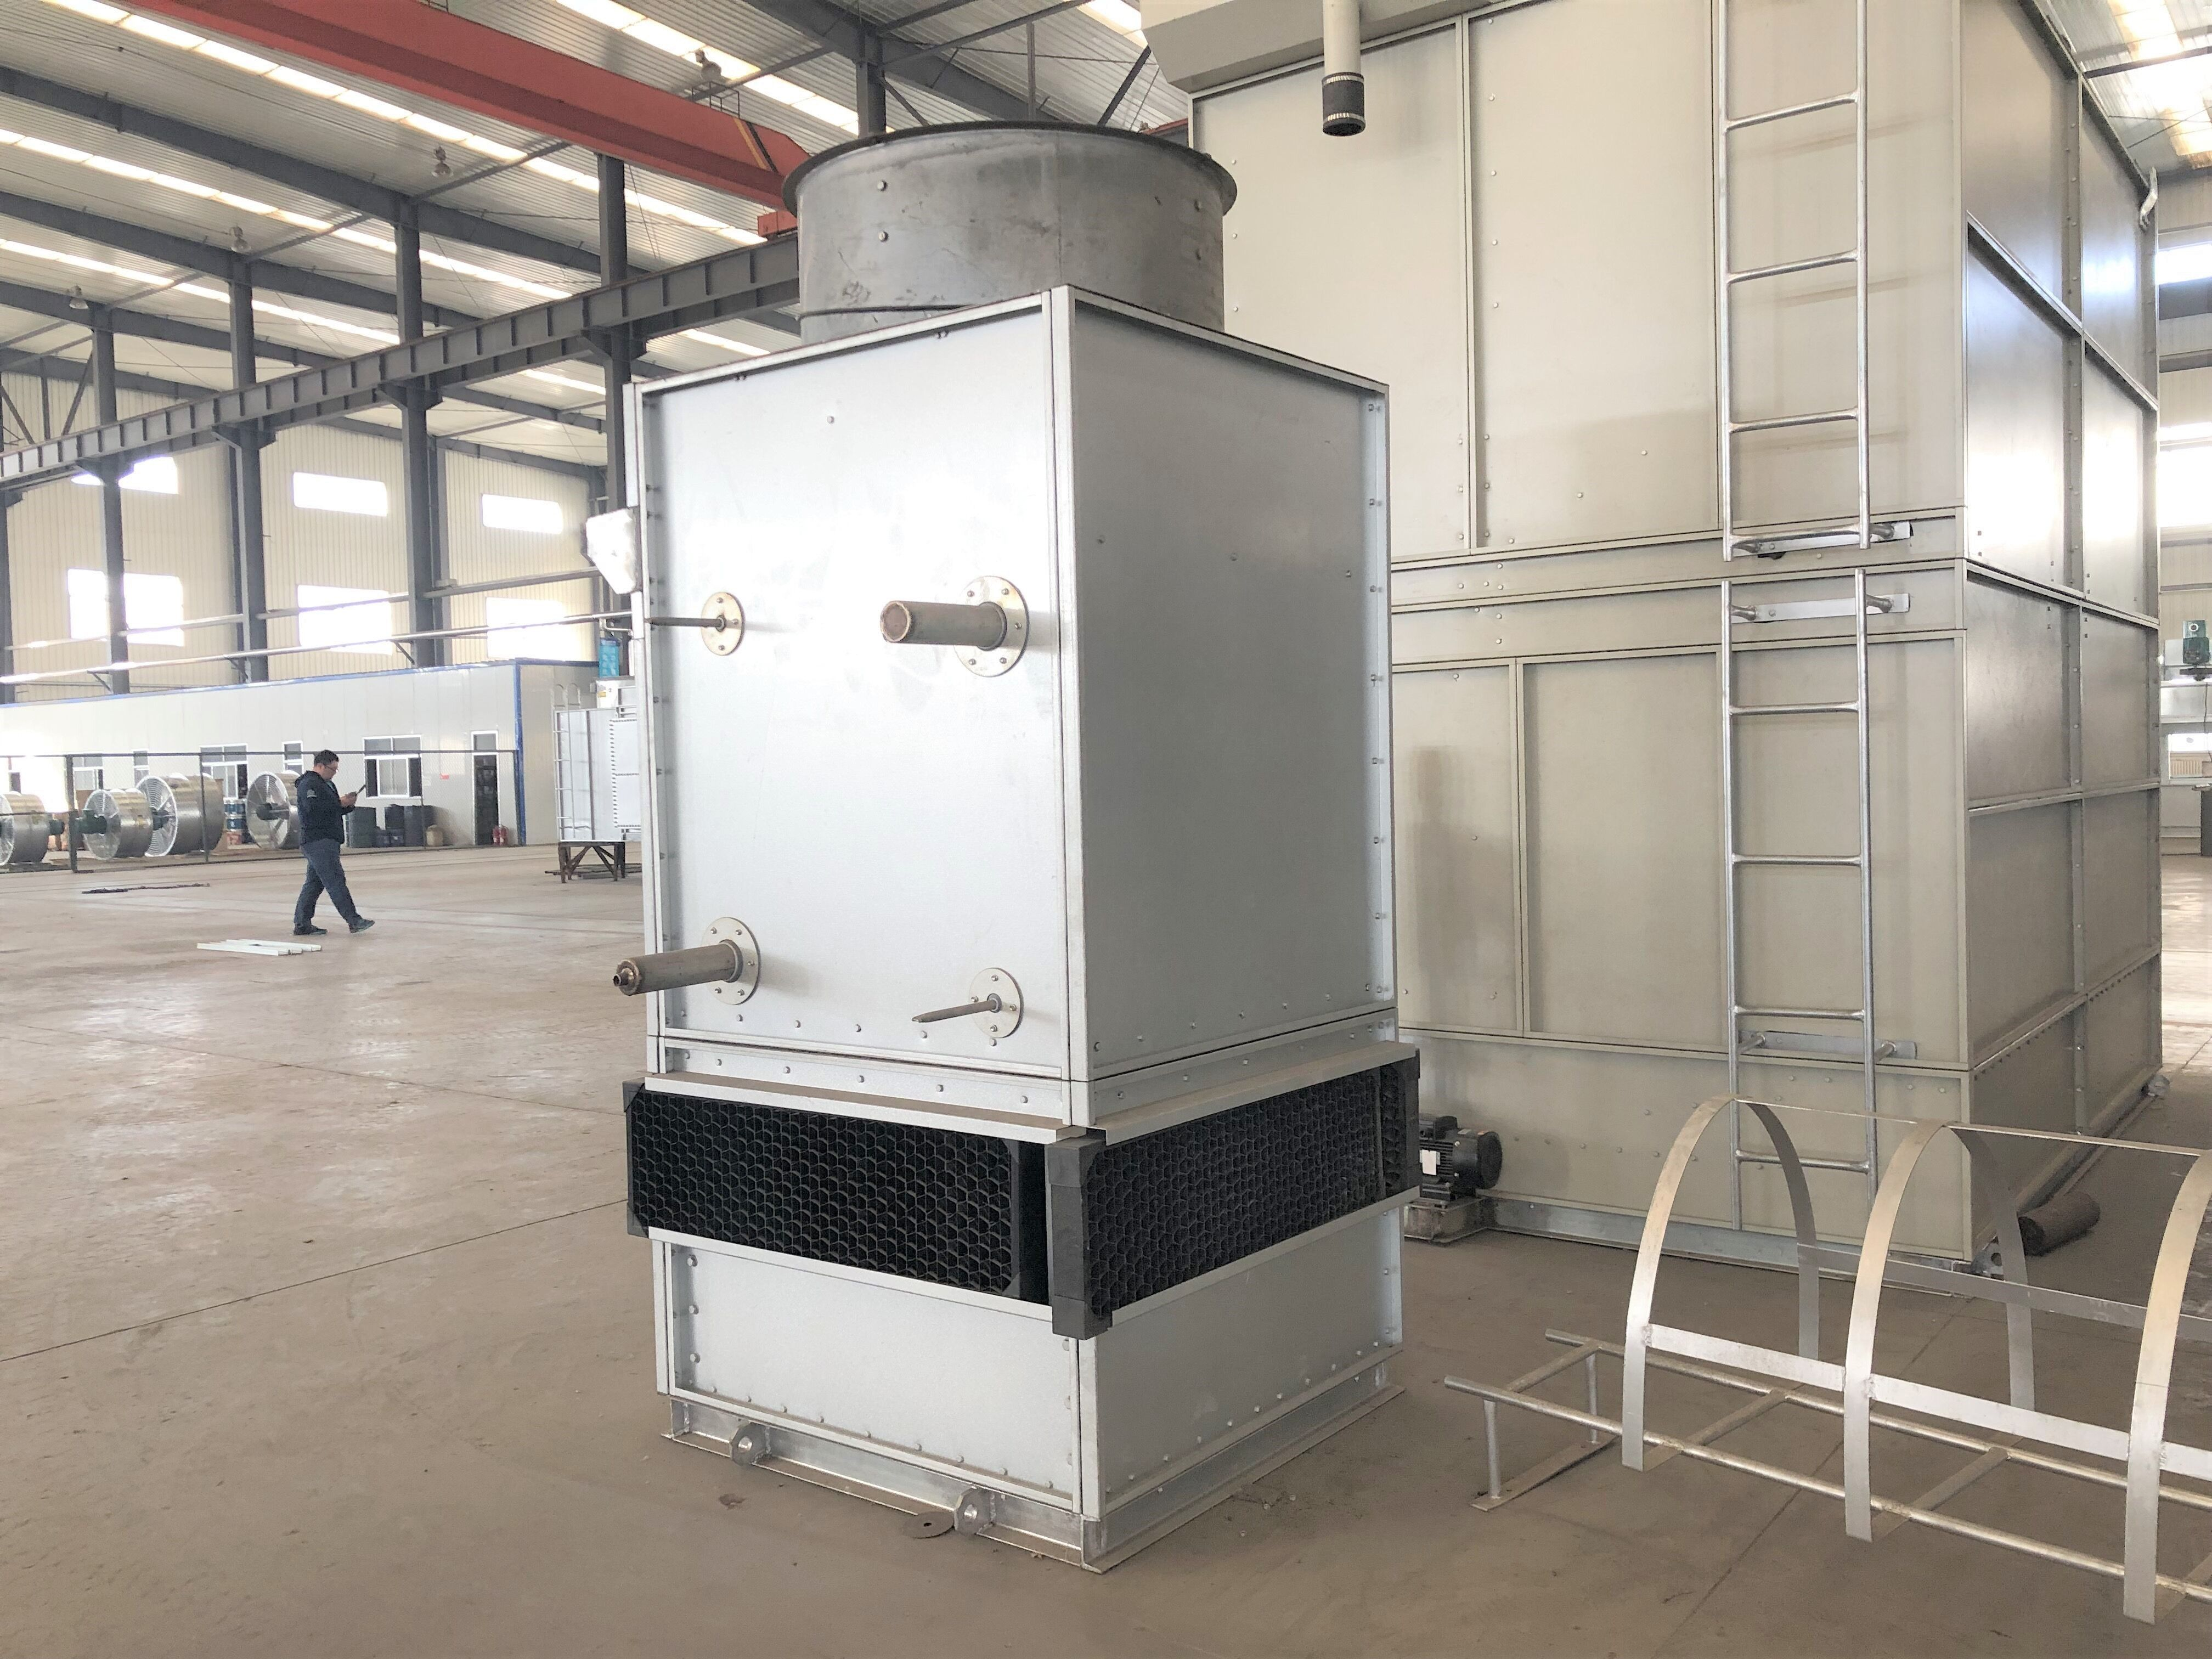 Super Mini Cooling Tower Designed For Customer Is Ready For